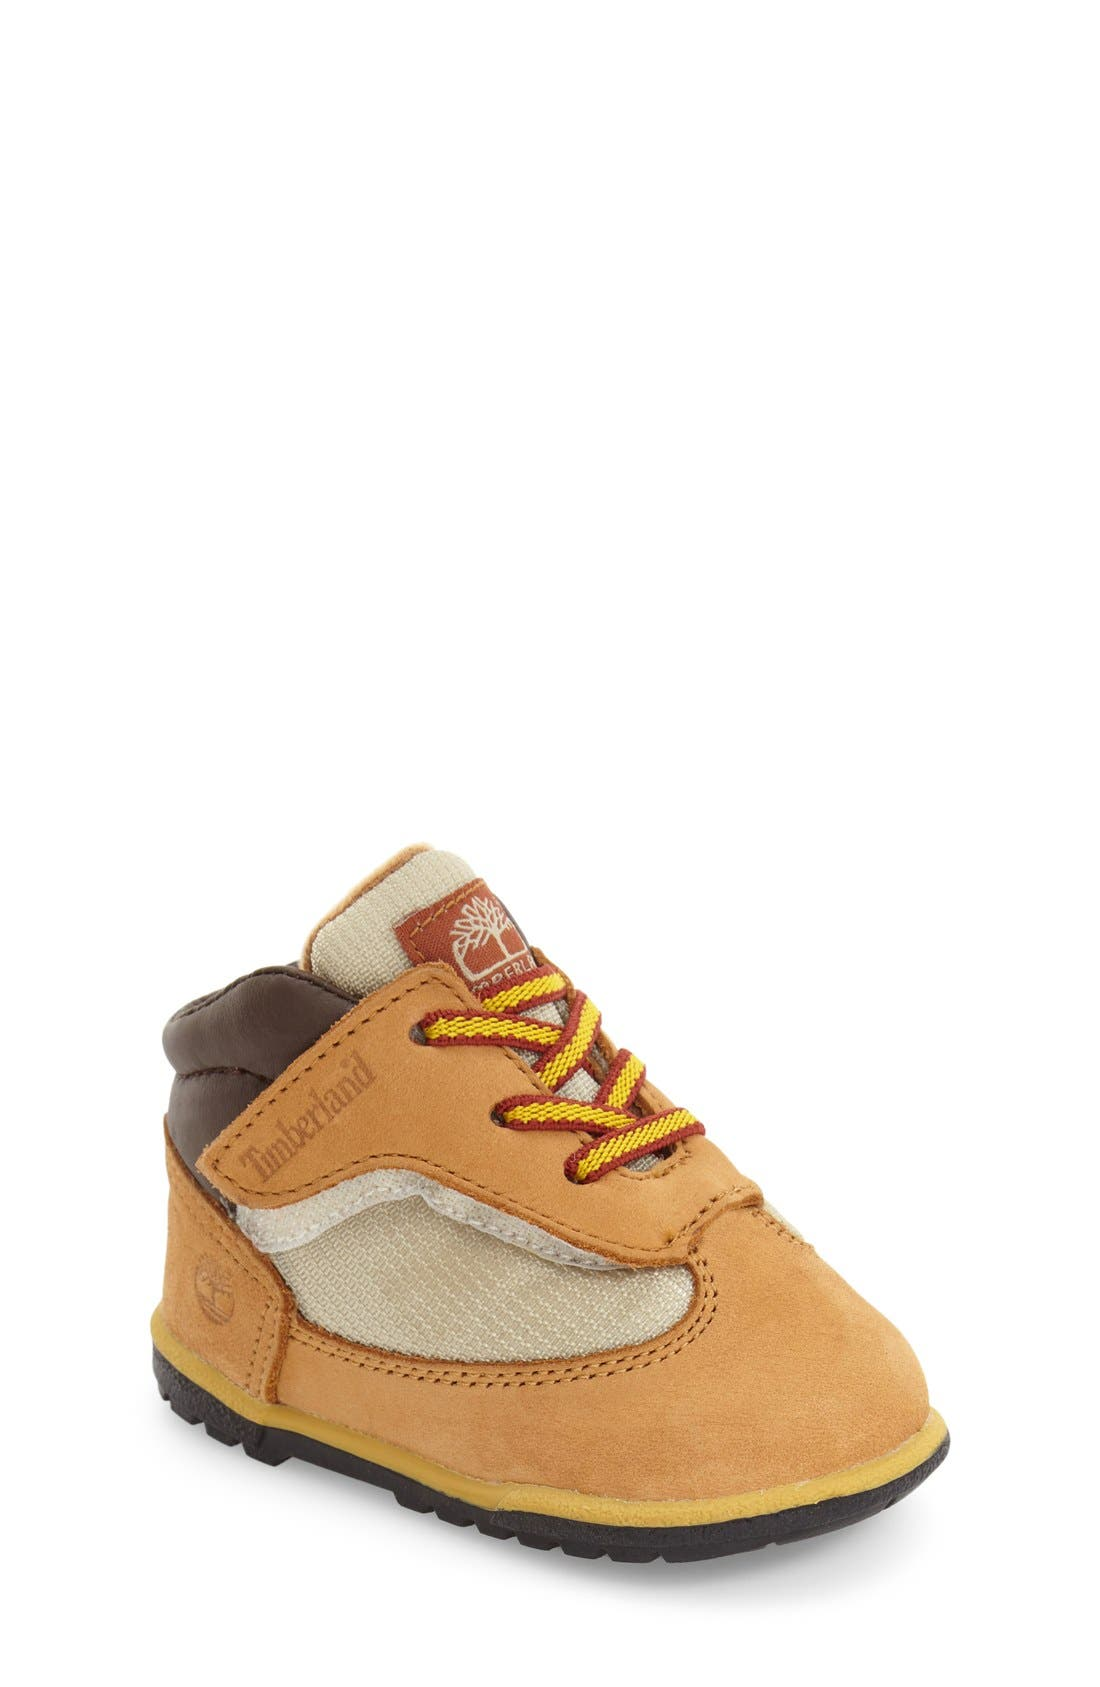 Alternate Image 1 Selected - Timberland Field Crib Boot (Baby)